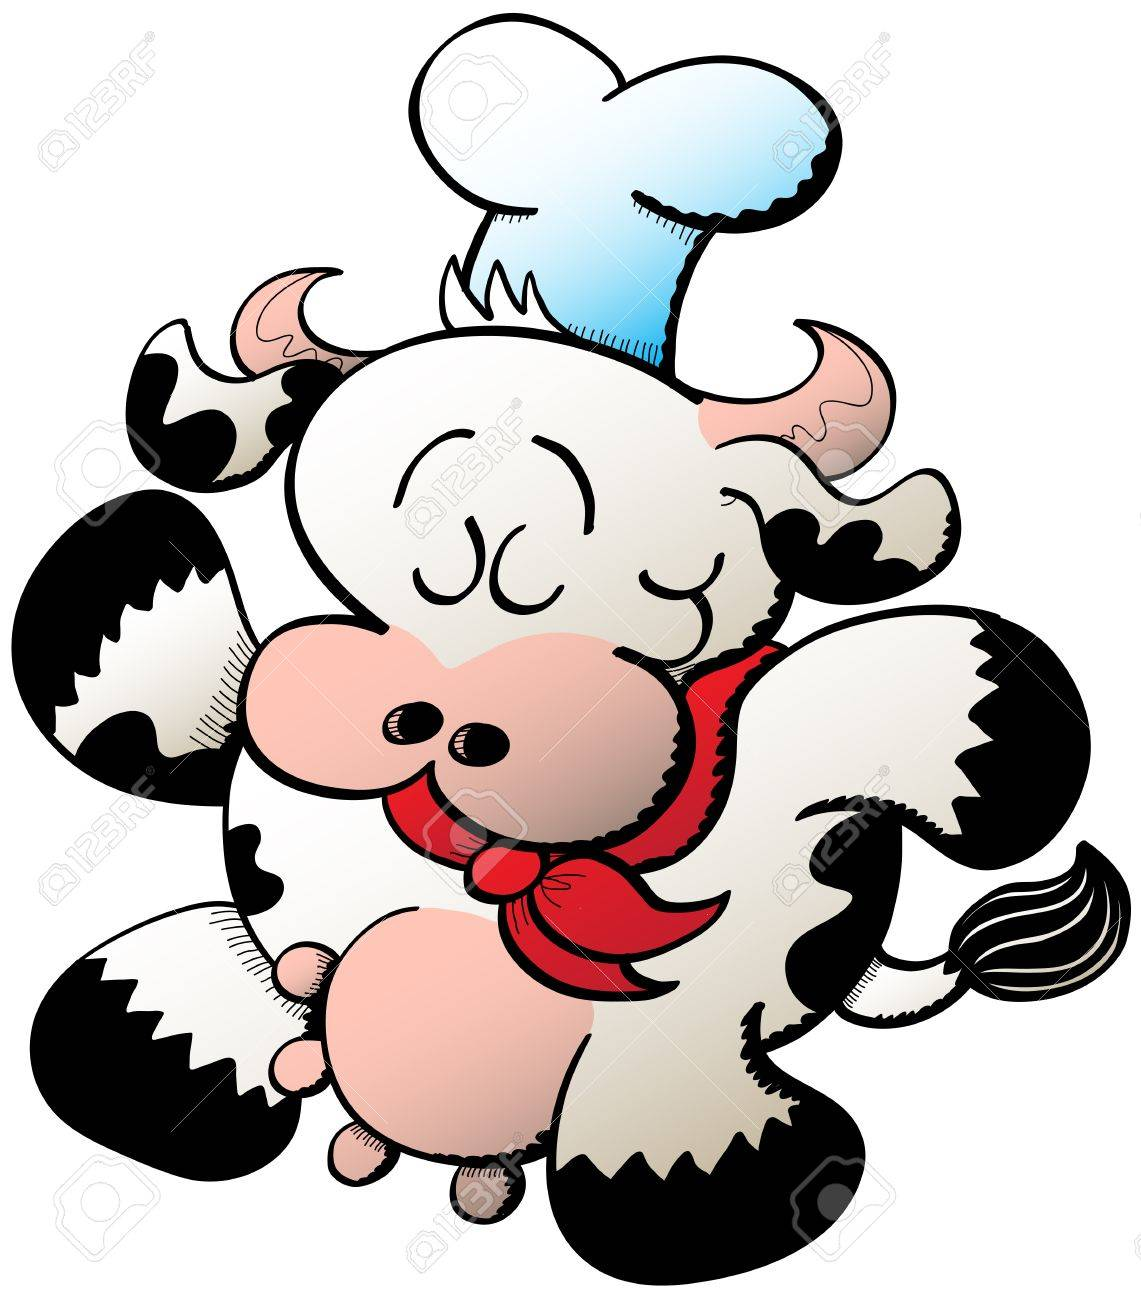 1141x1300 Little Chubby Cow Wearing Chef Accessories Like A Hat And A Red